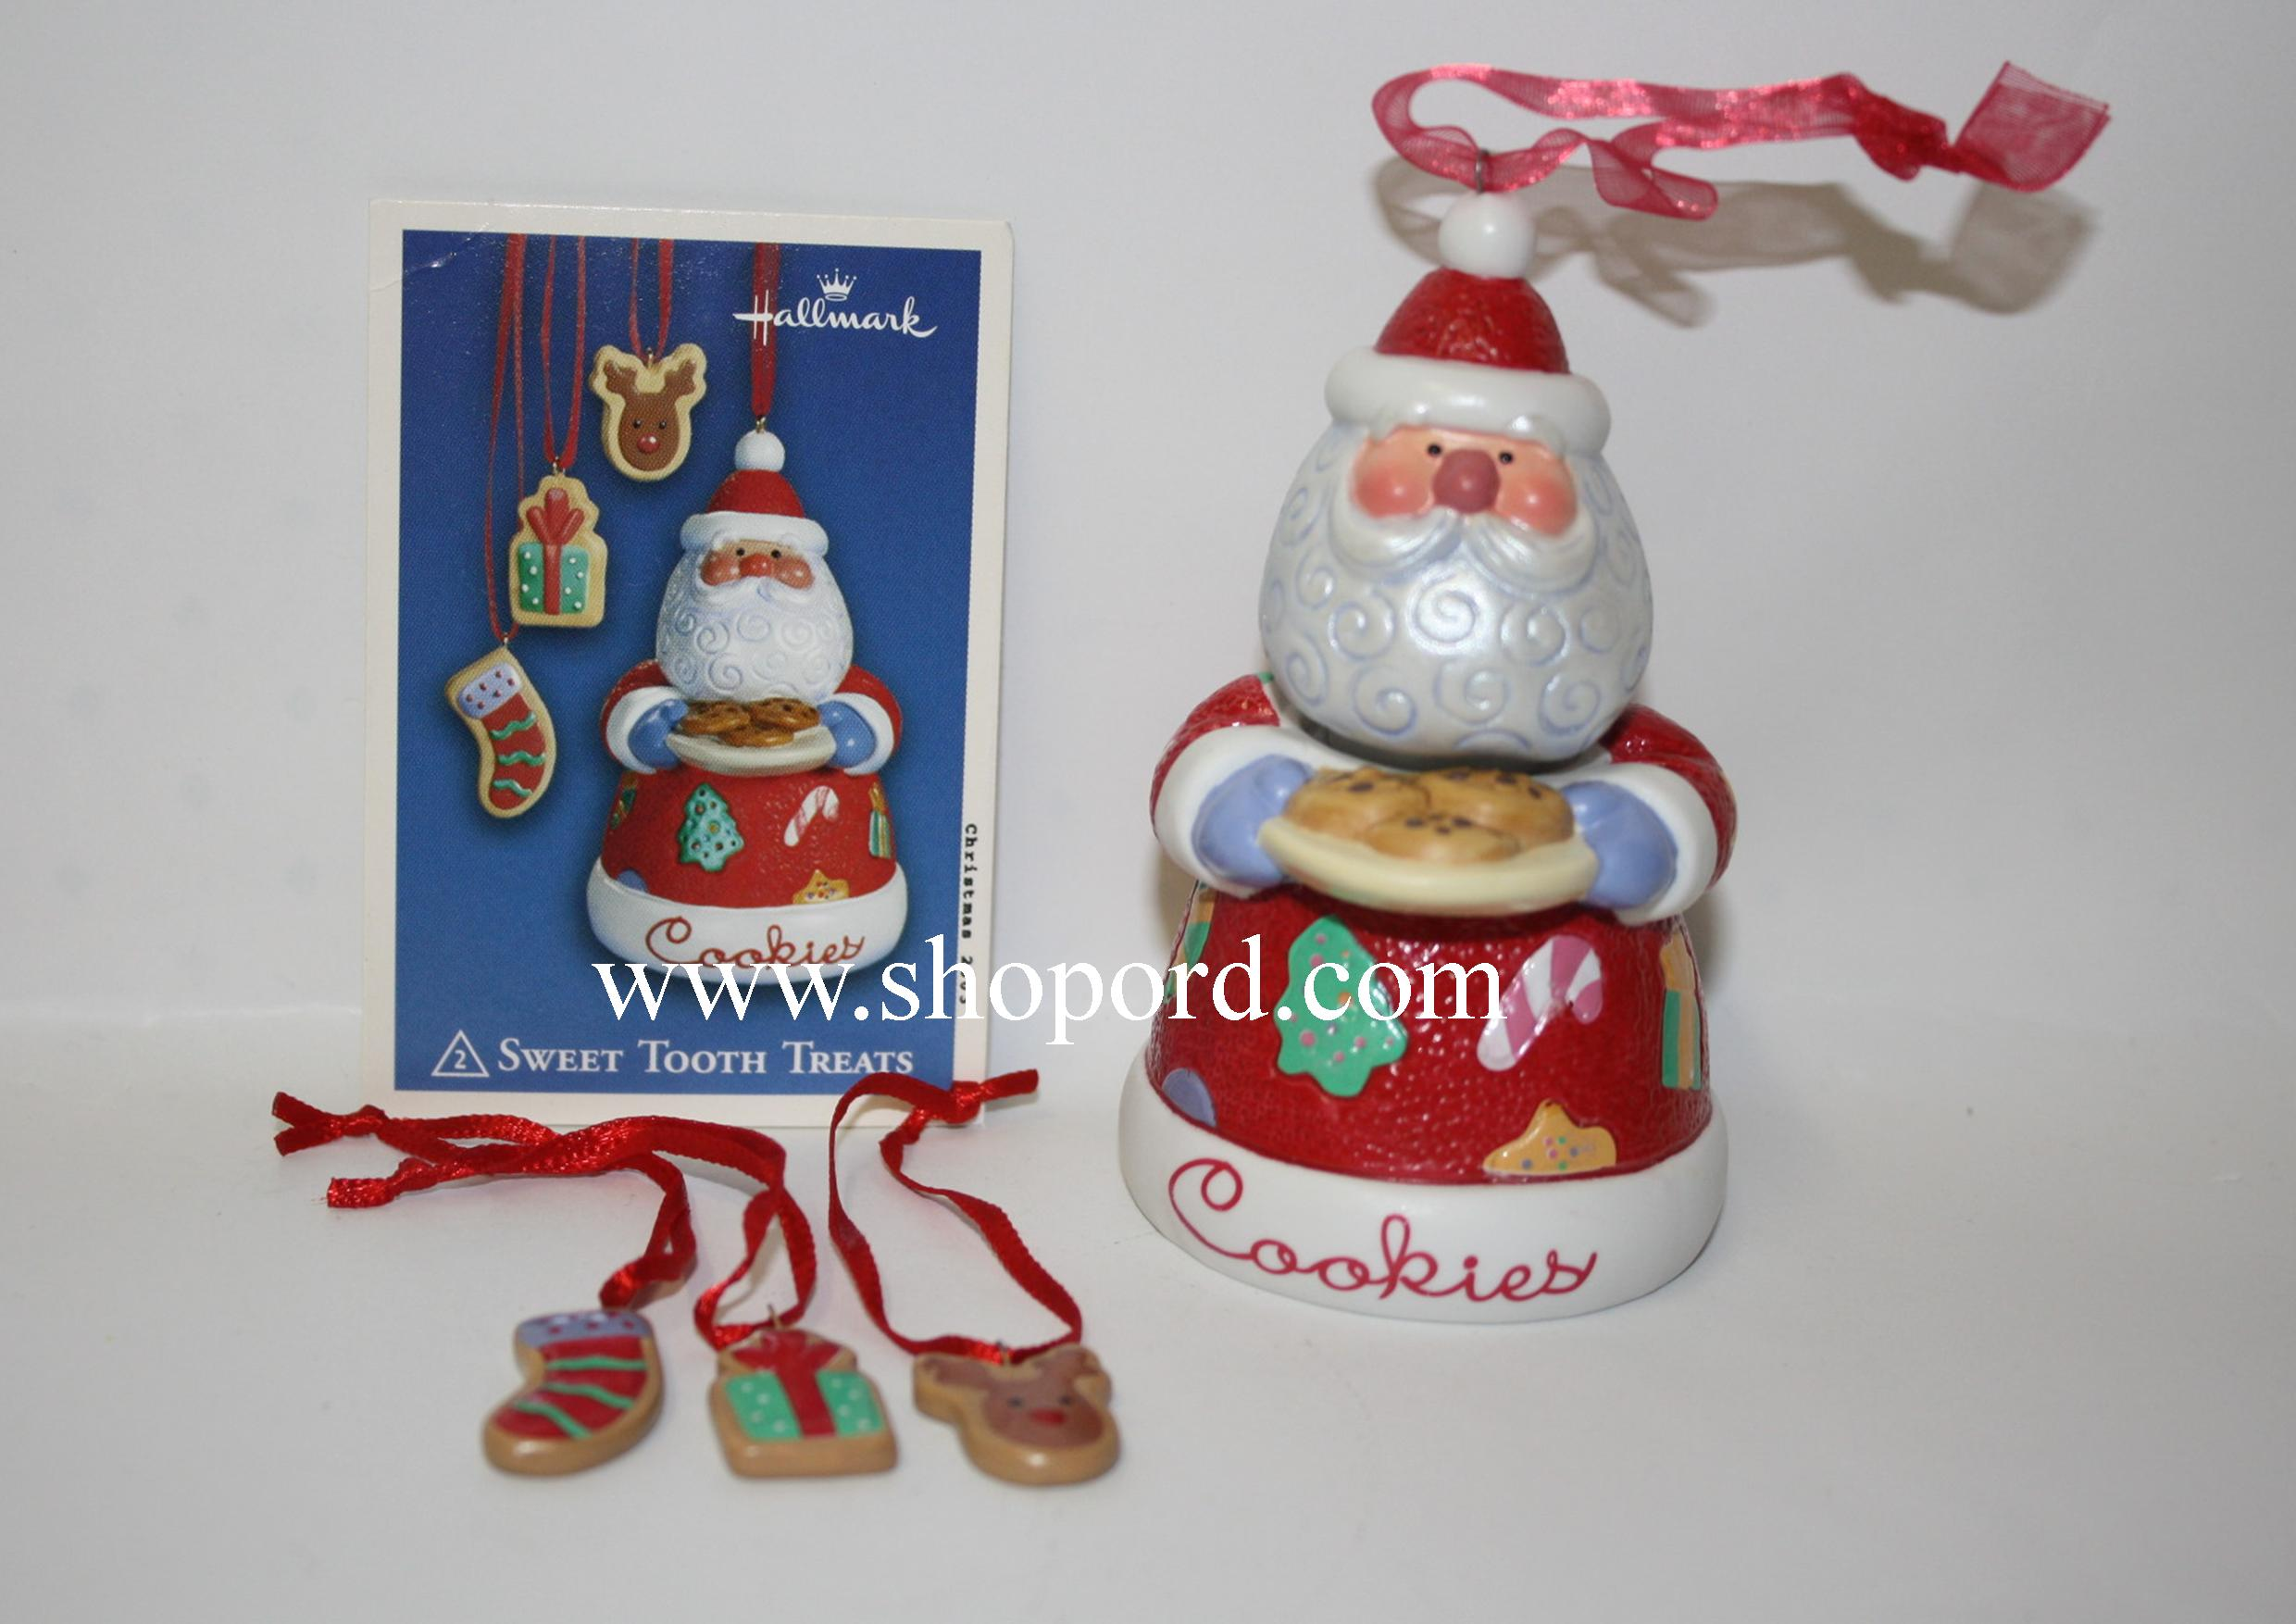 Hallmark 2003 Sweet Tooth Treats set of 4 Ornament 2nd in the series QX8199